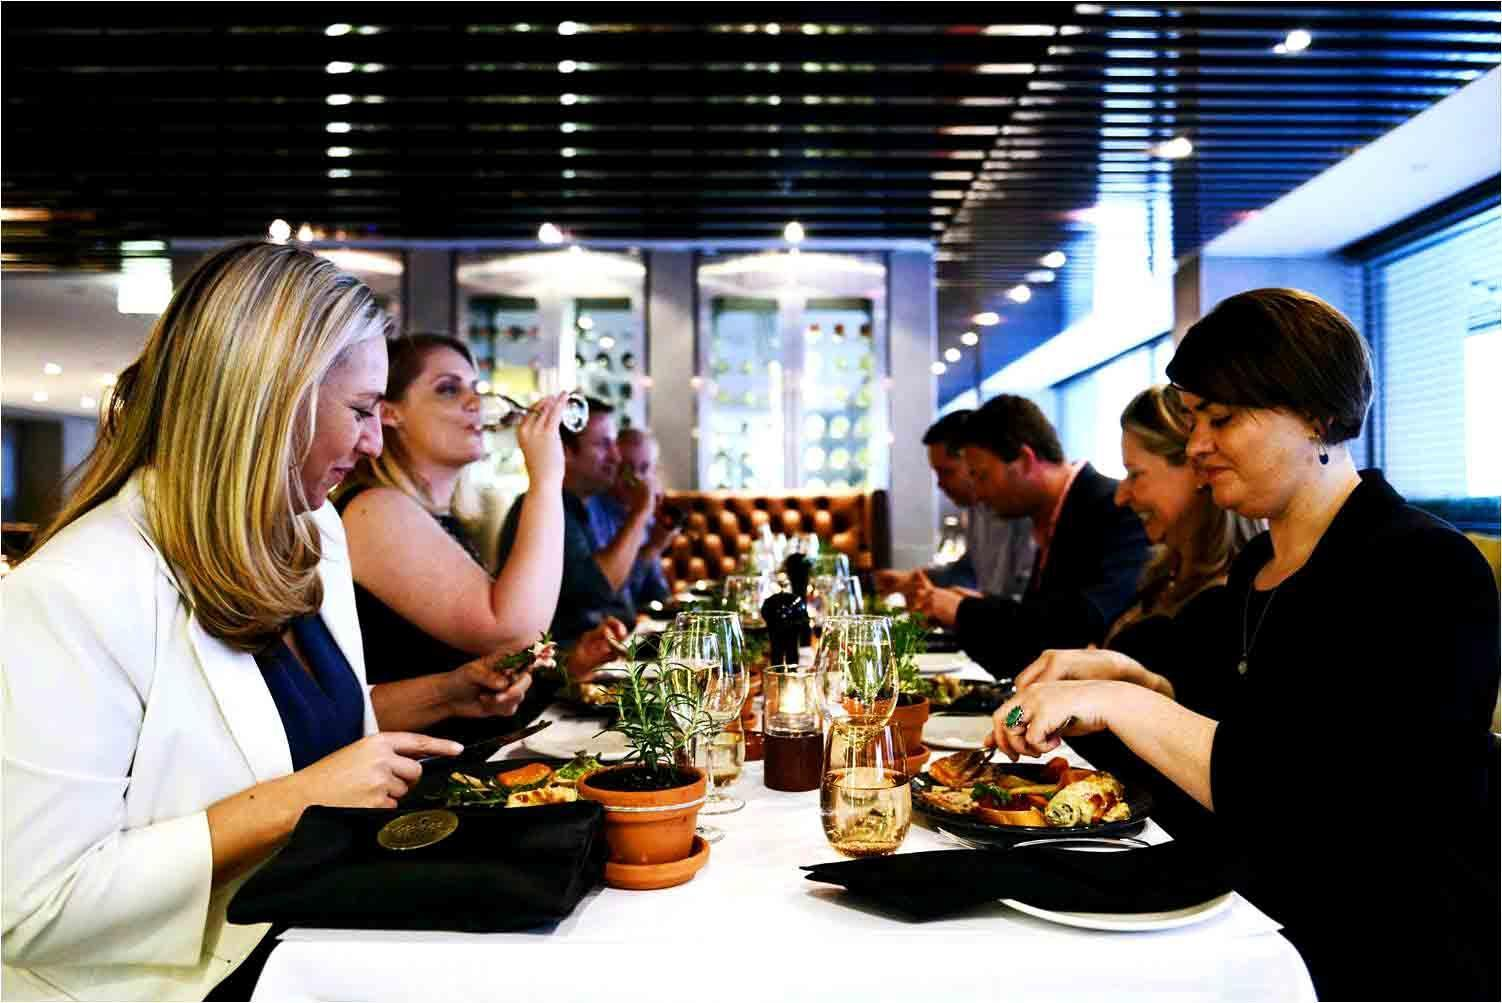 Sophisticated restaurants with private dining rooms melbourne images locanda cbd private dining venue hidden city secrets dzzzfo